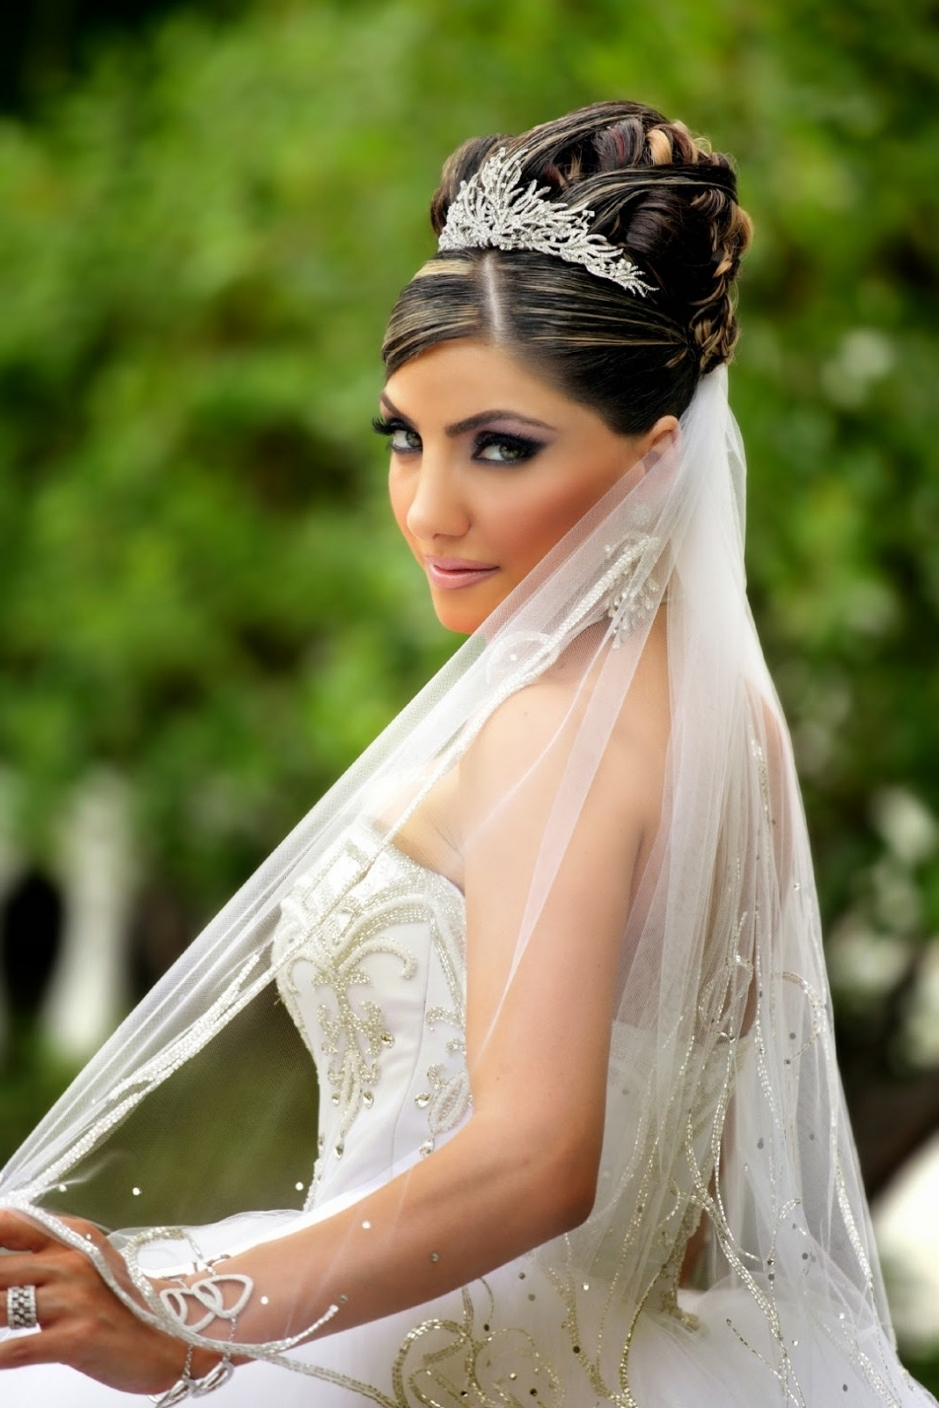 Bridal Hairstyle With Tiara Hairstyles With Tiara Wedding Hairstyles In Fashionable Wedding Updos For Long Hair With Tiara (View 3 of 15)